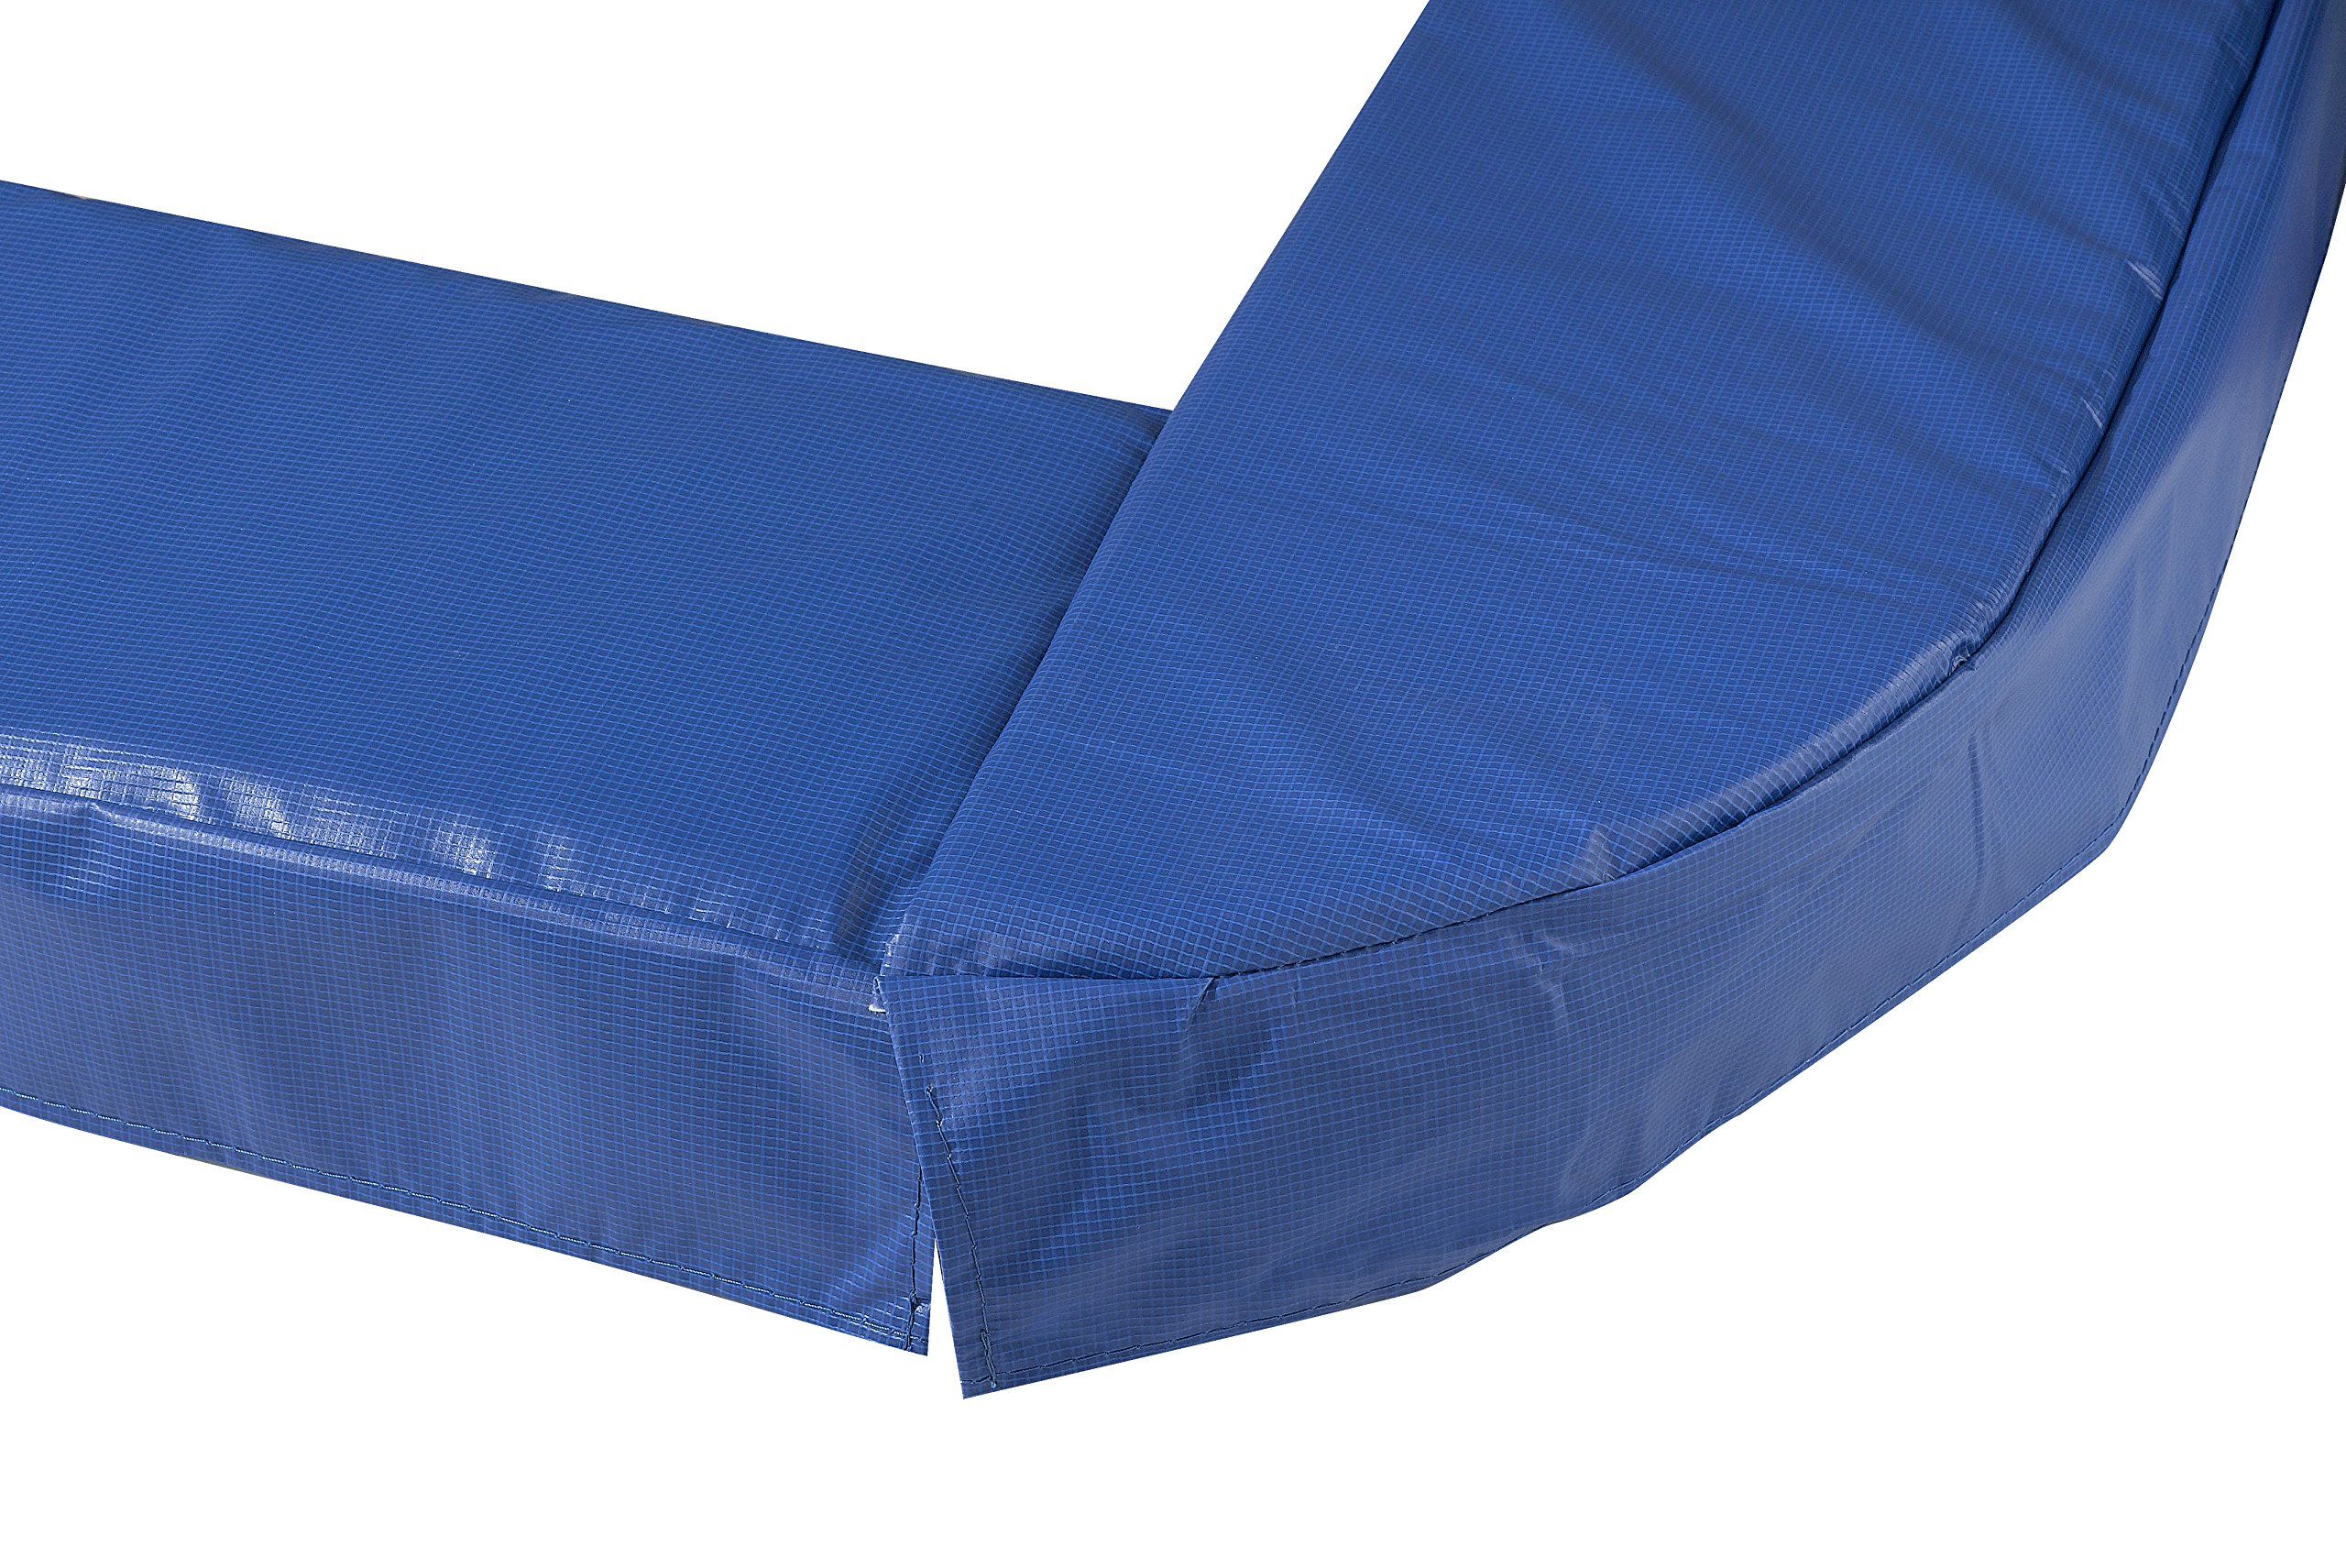 Upper Bounce Super Trampoline Replacement Safety Pad (Spring Cover) for 9' x 15' Rectangular Frames, Blue by Upper Bounce (Image #4)